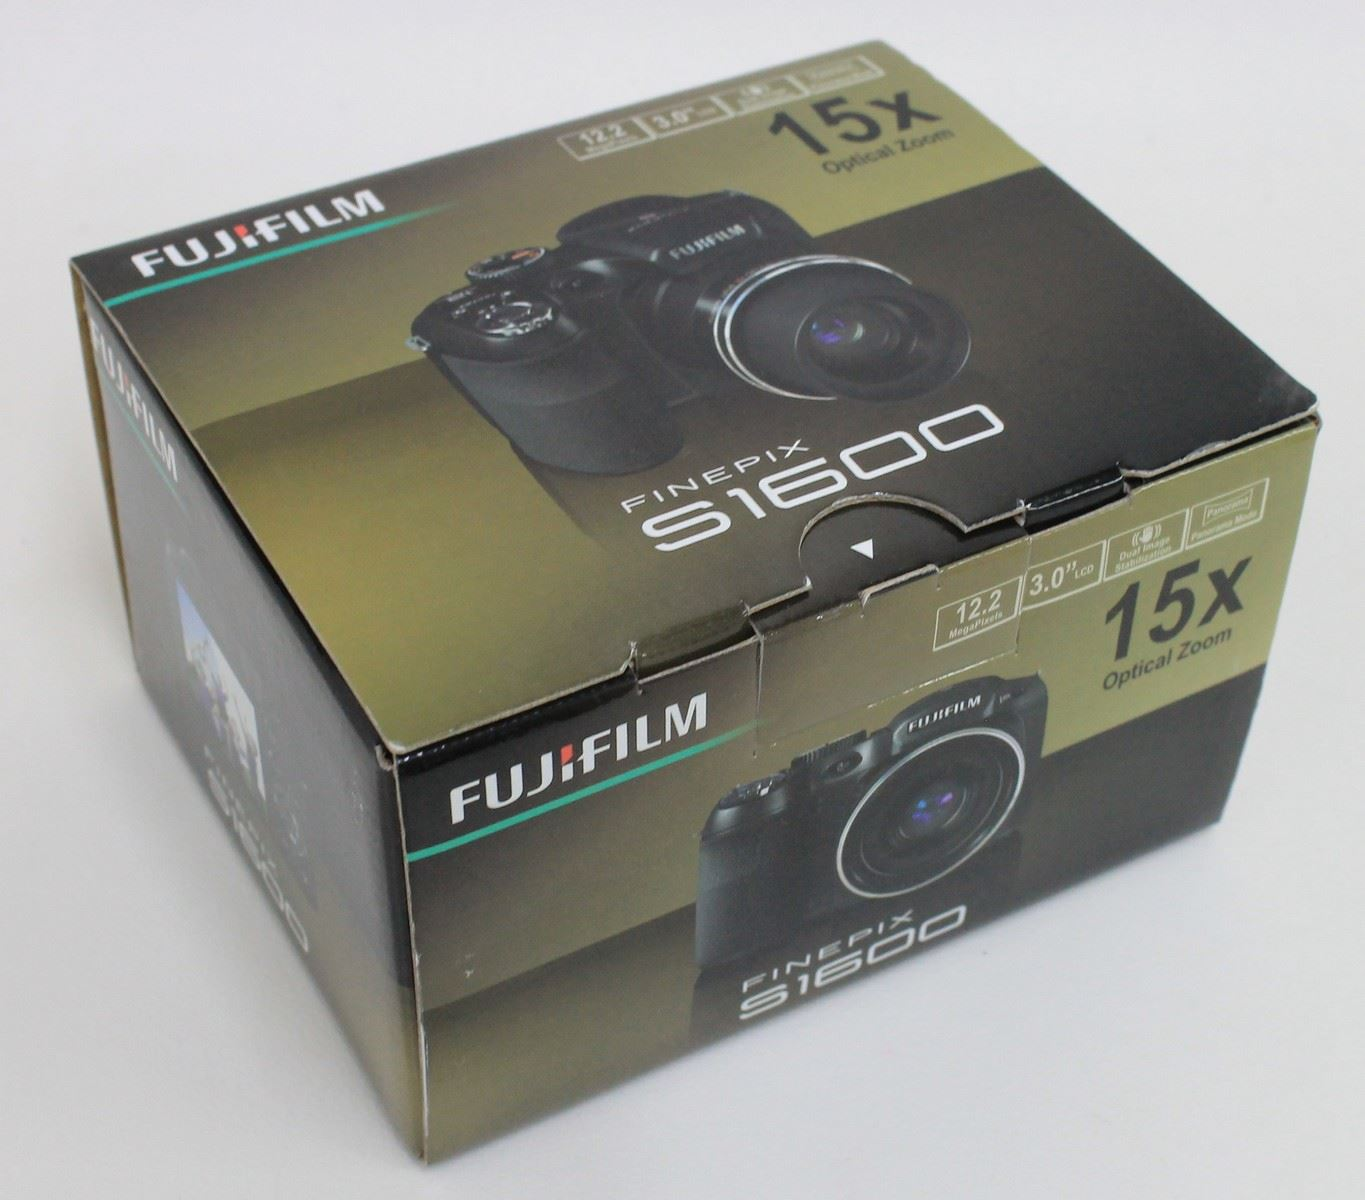 Bnib fujifilm finepix s1600 digital camera 12 2 mp 3 lcd for Prix fujifilm finepix s1600